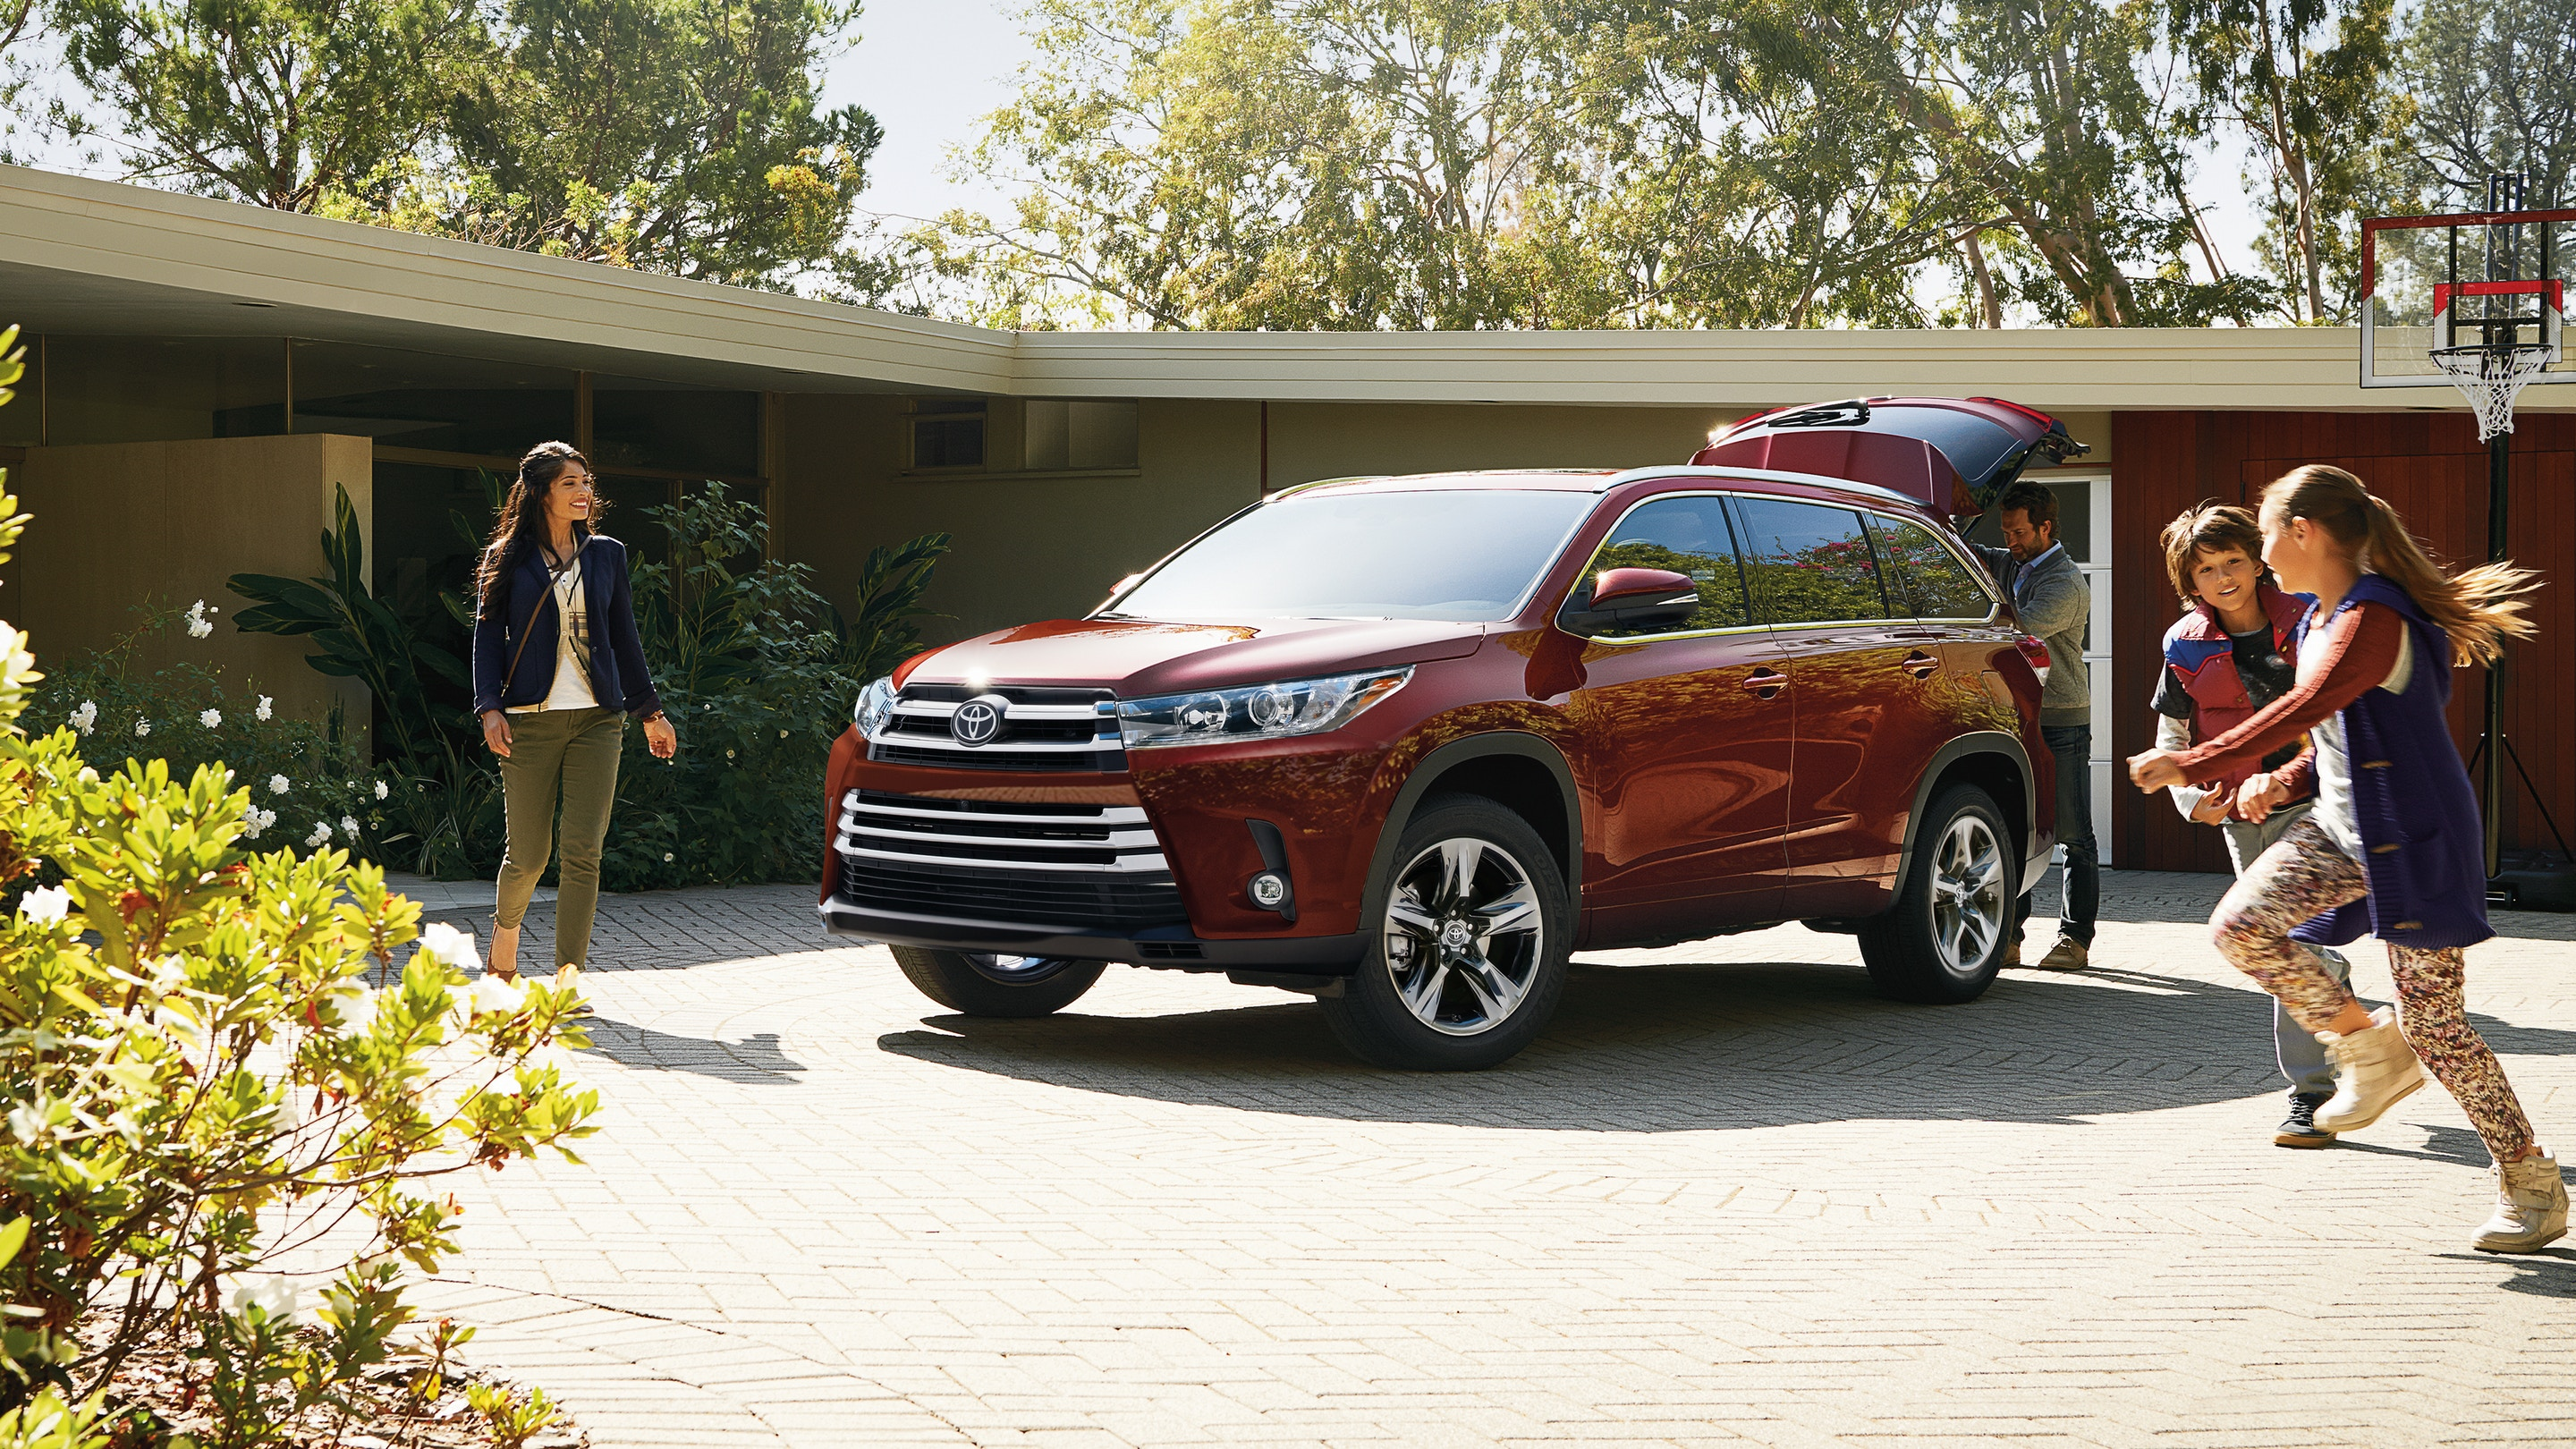 2019 Toyota Highlander for Sale near Elgin, IL